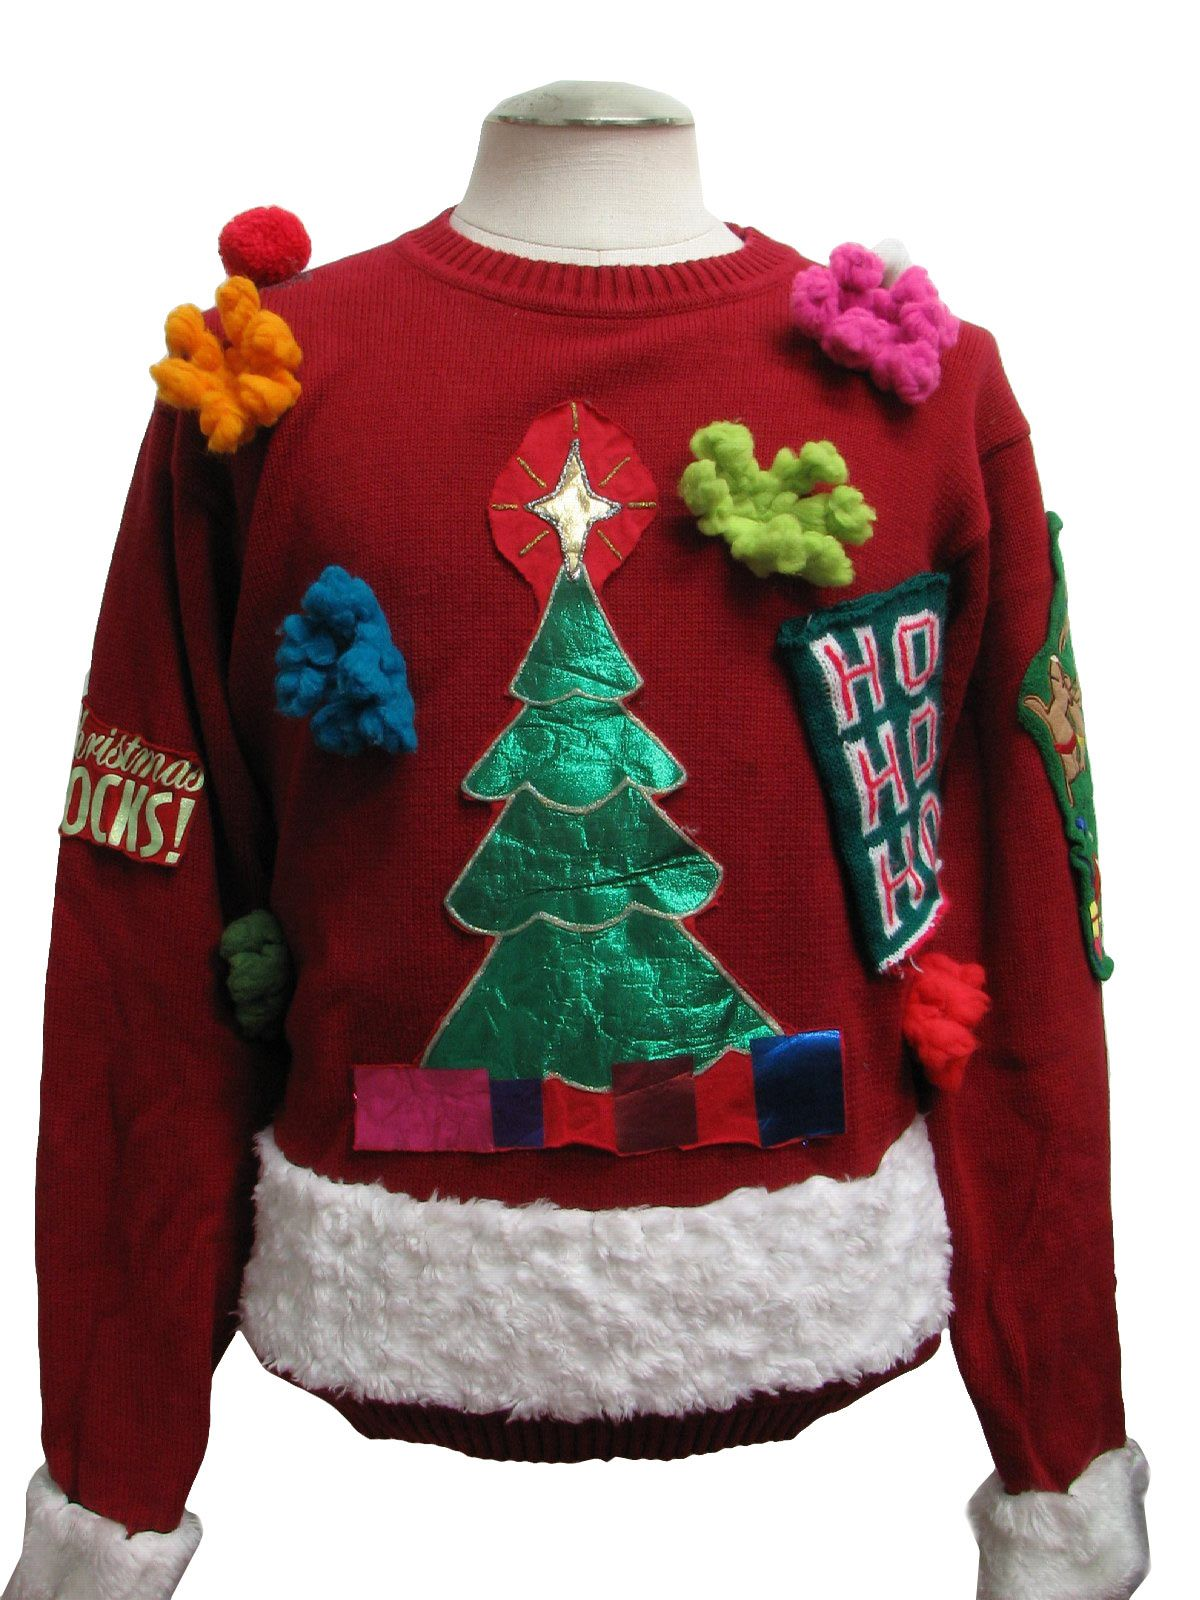 20 Ugly Christmas Sweater Ideas for This Christmas | Homemade ugly ...